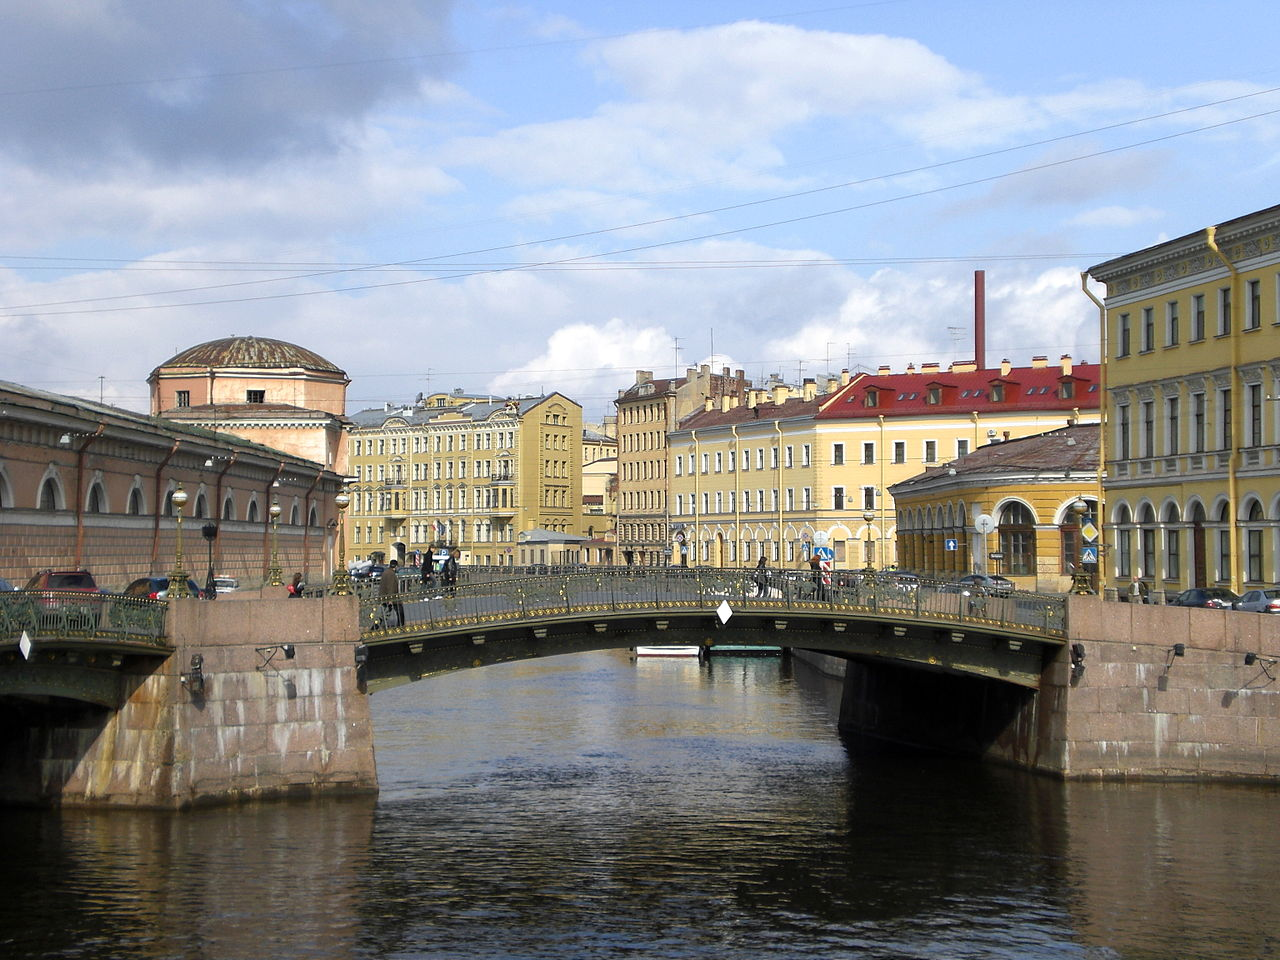 Bridge over a canal in St. Petersburg